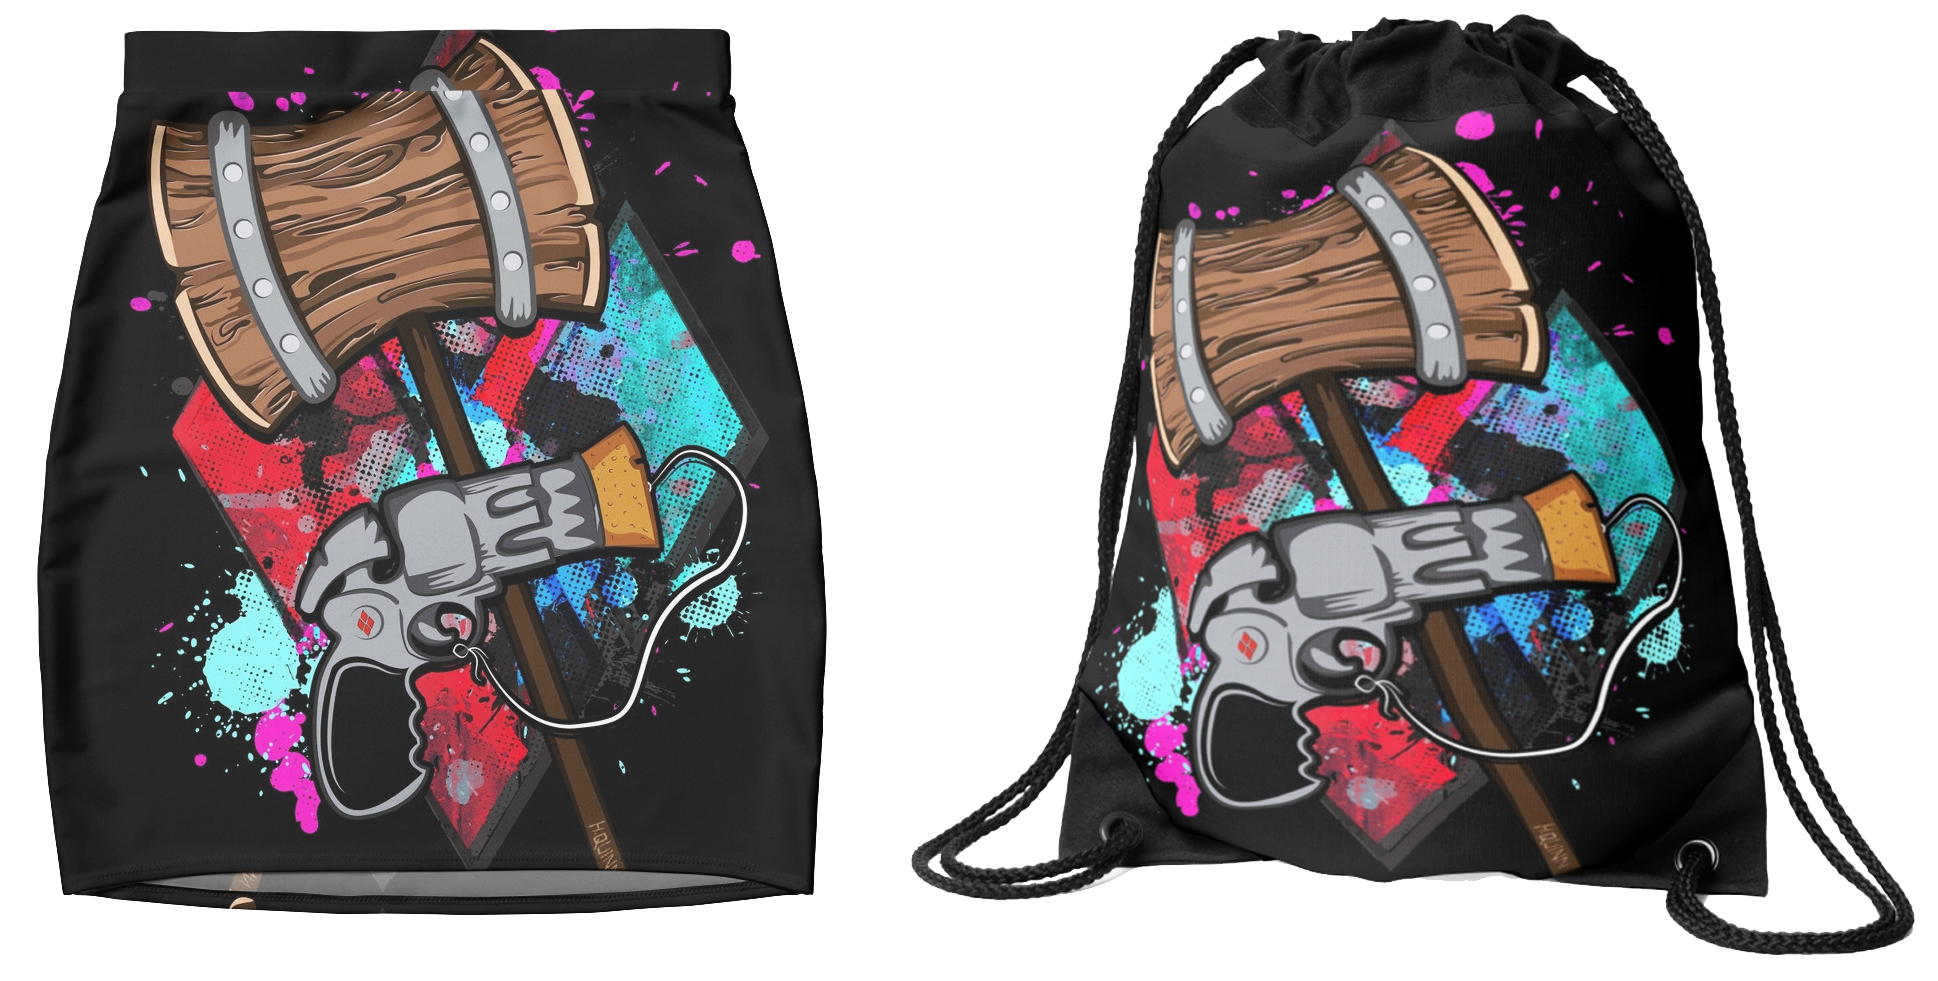 The Psycho Harley Quinn Skirt Backpack Bag Redbubble